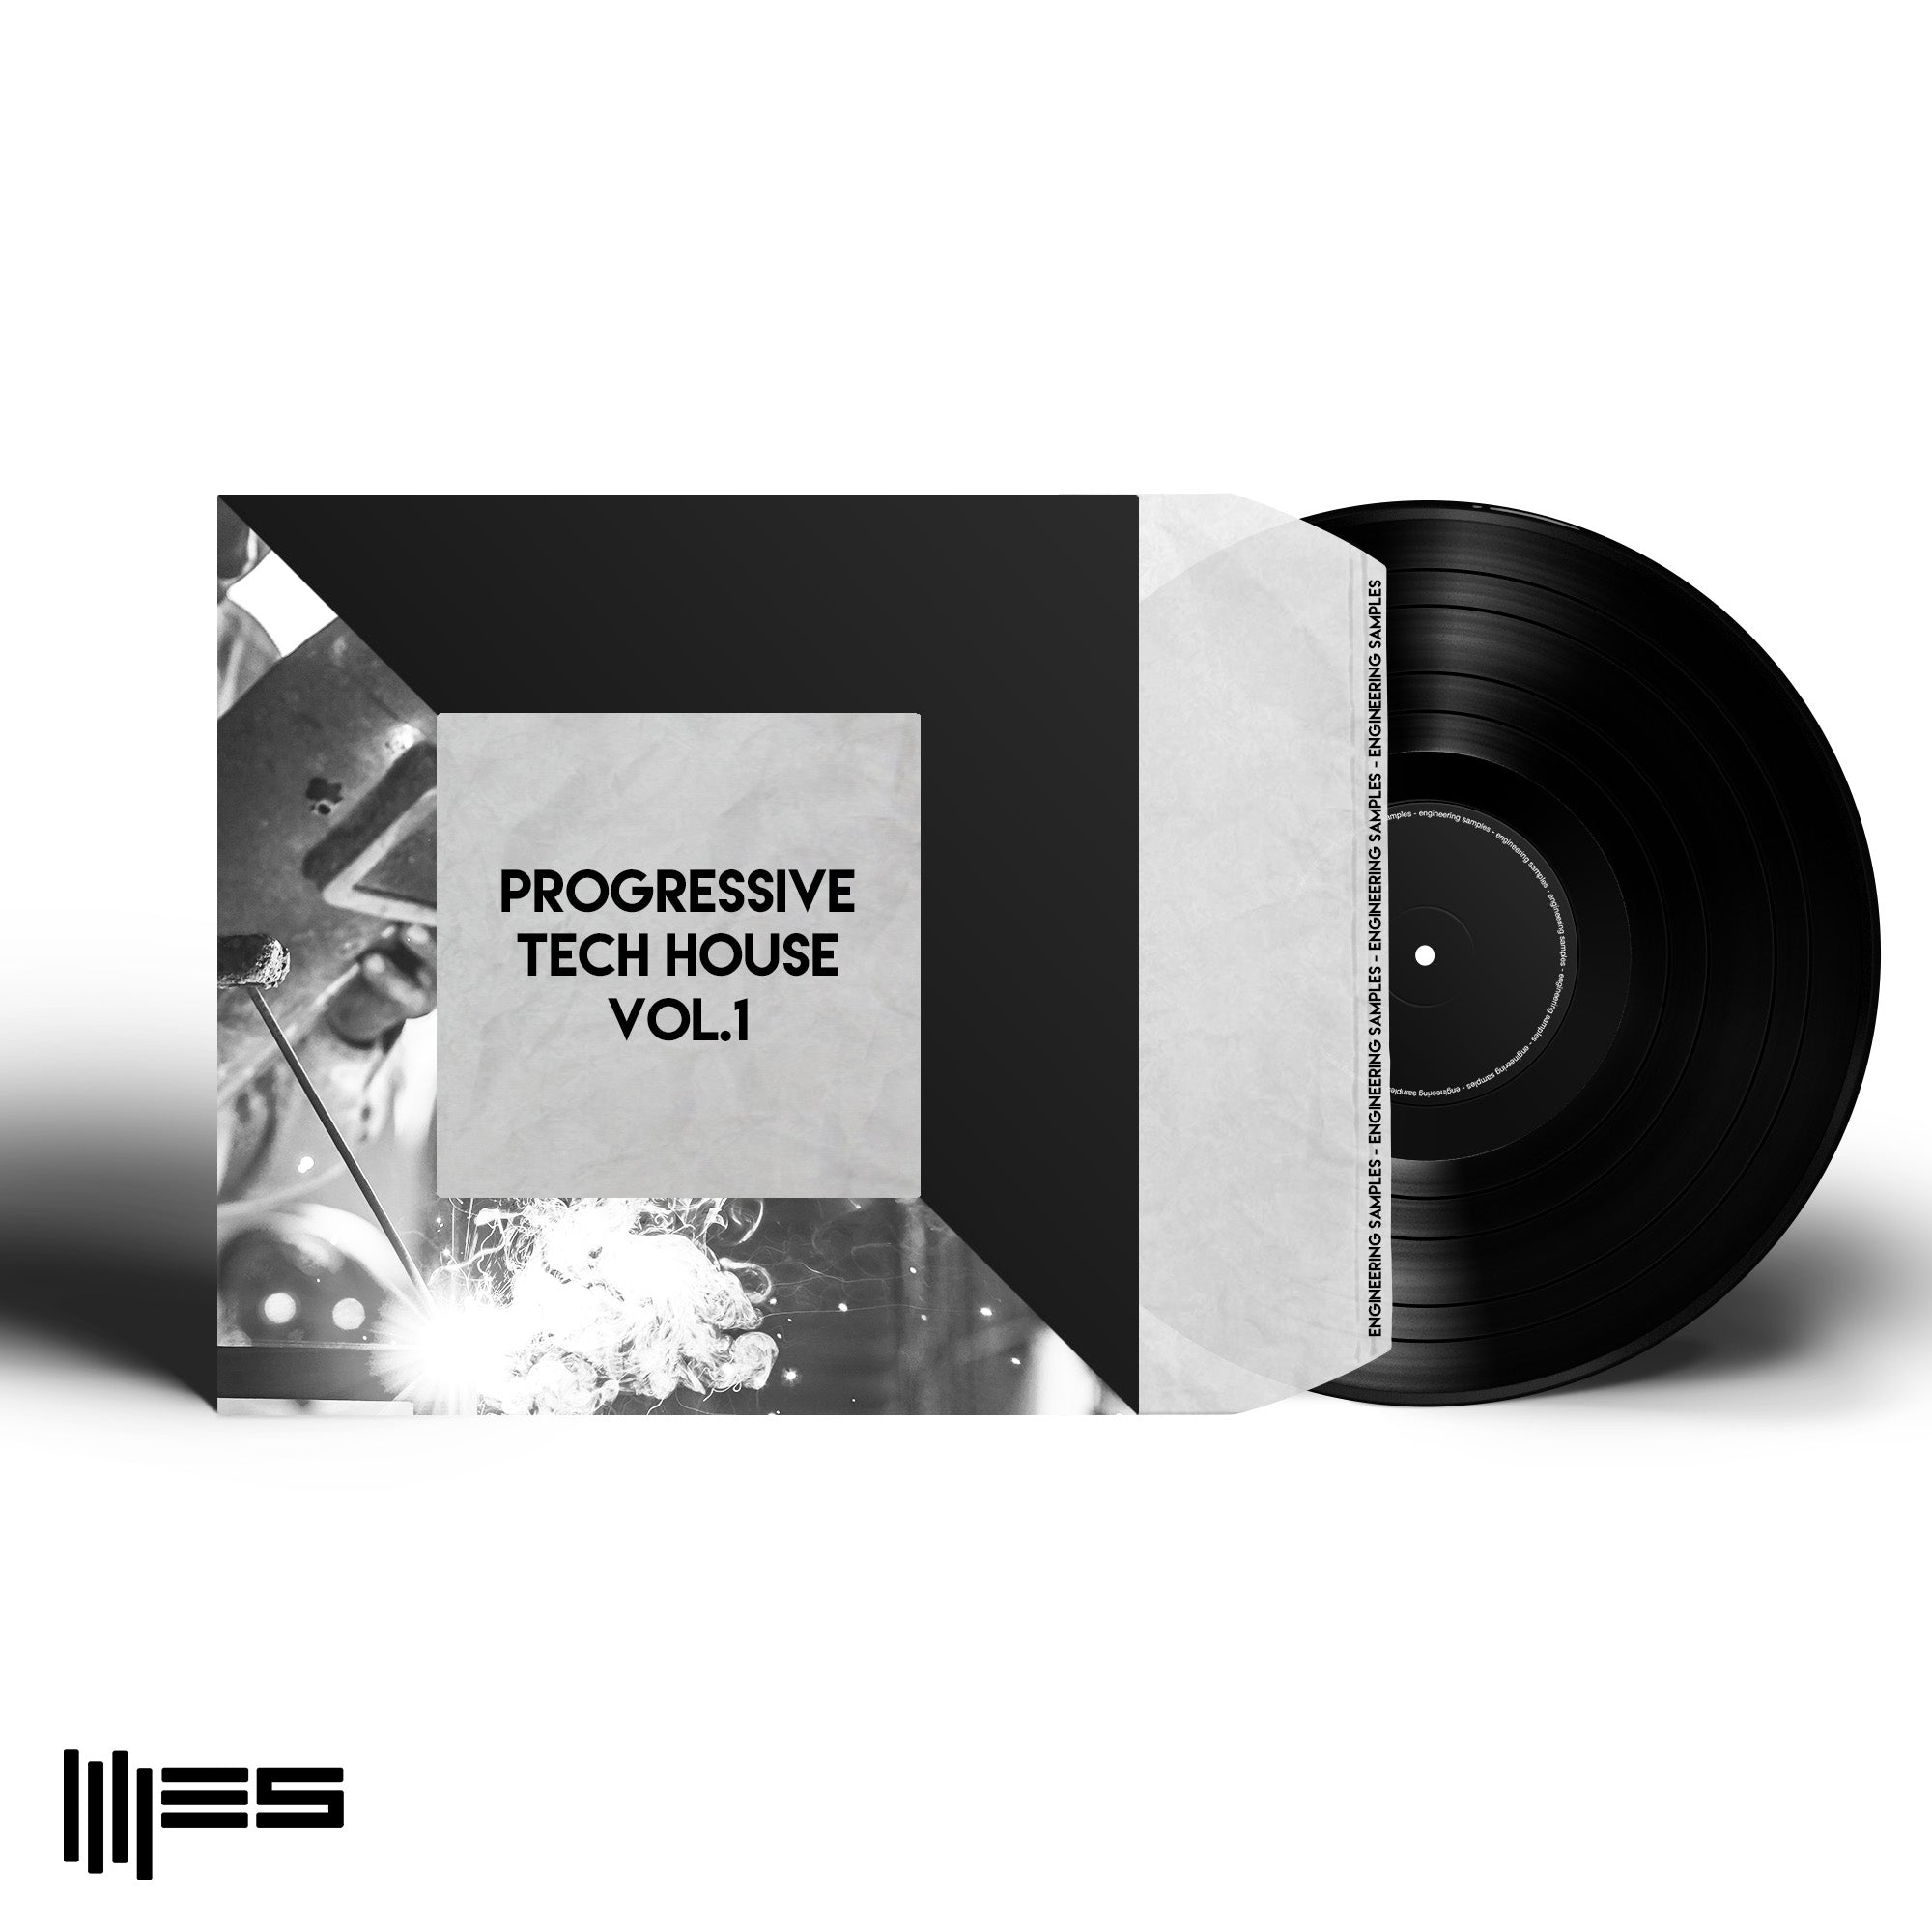 Progressive Tech House Vol.1